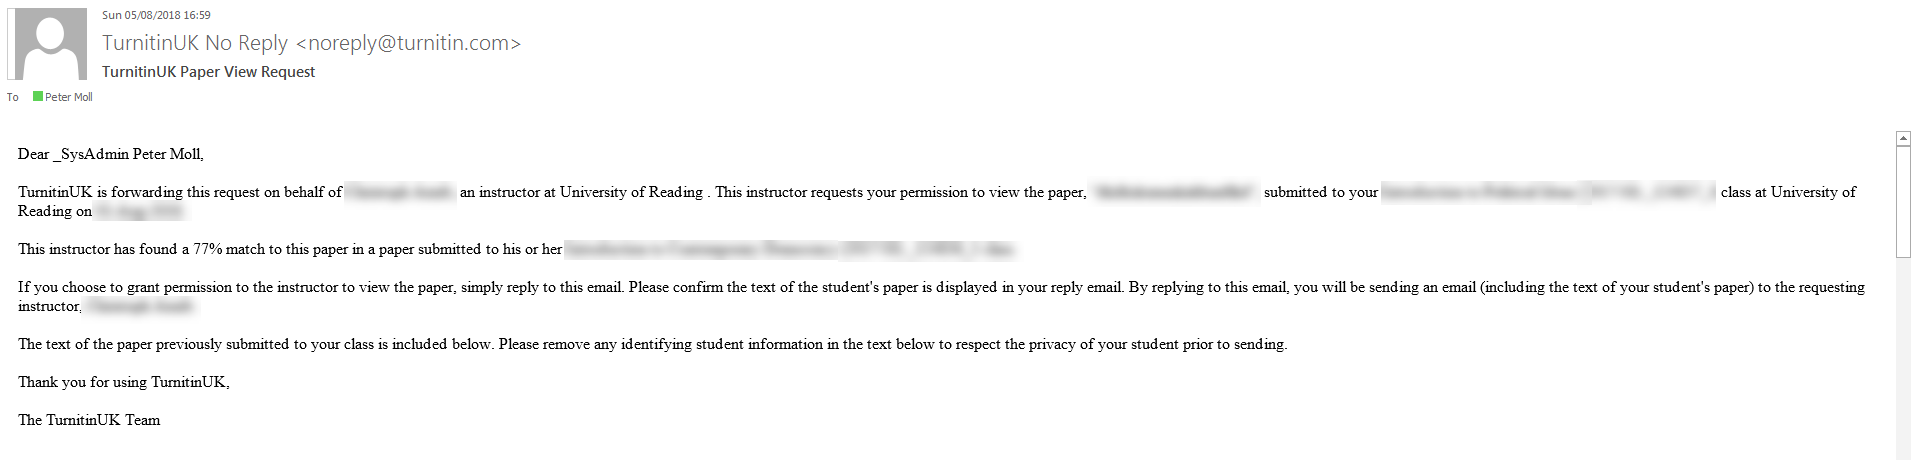 An example of an email request to view a paper